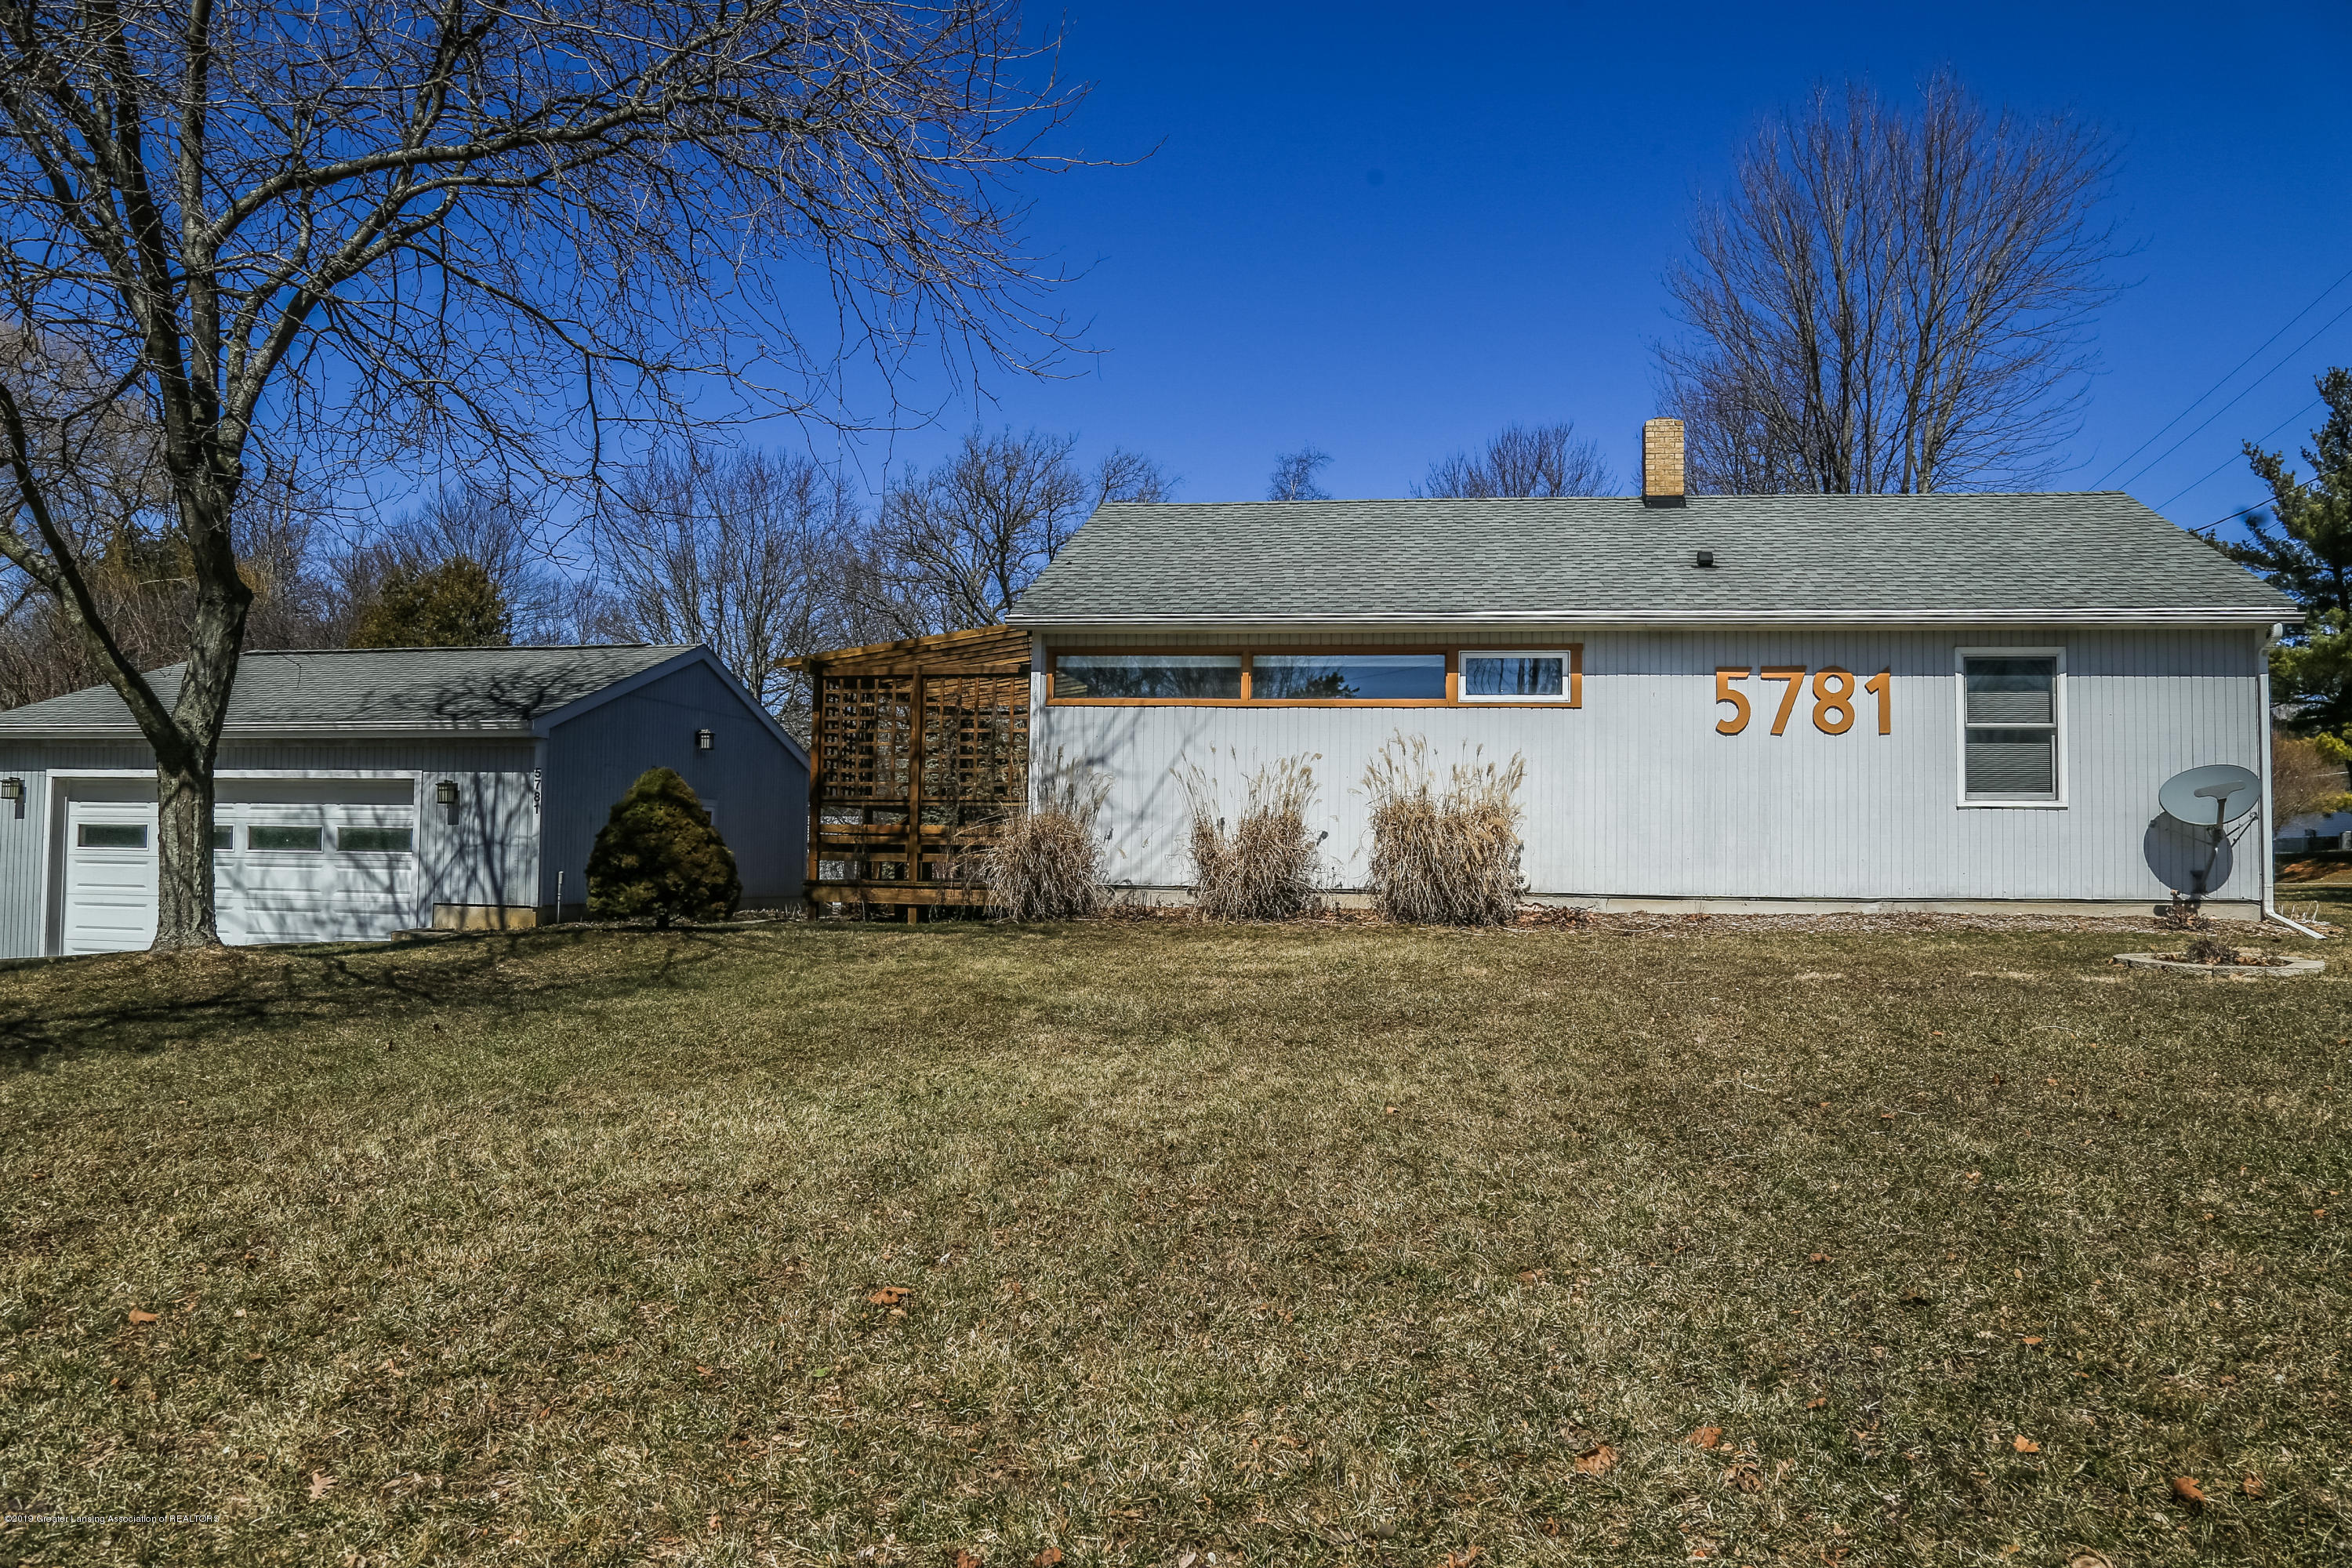 5781 Sleight Rd - untitled-5148 - 2